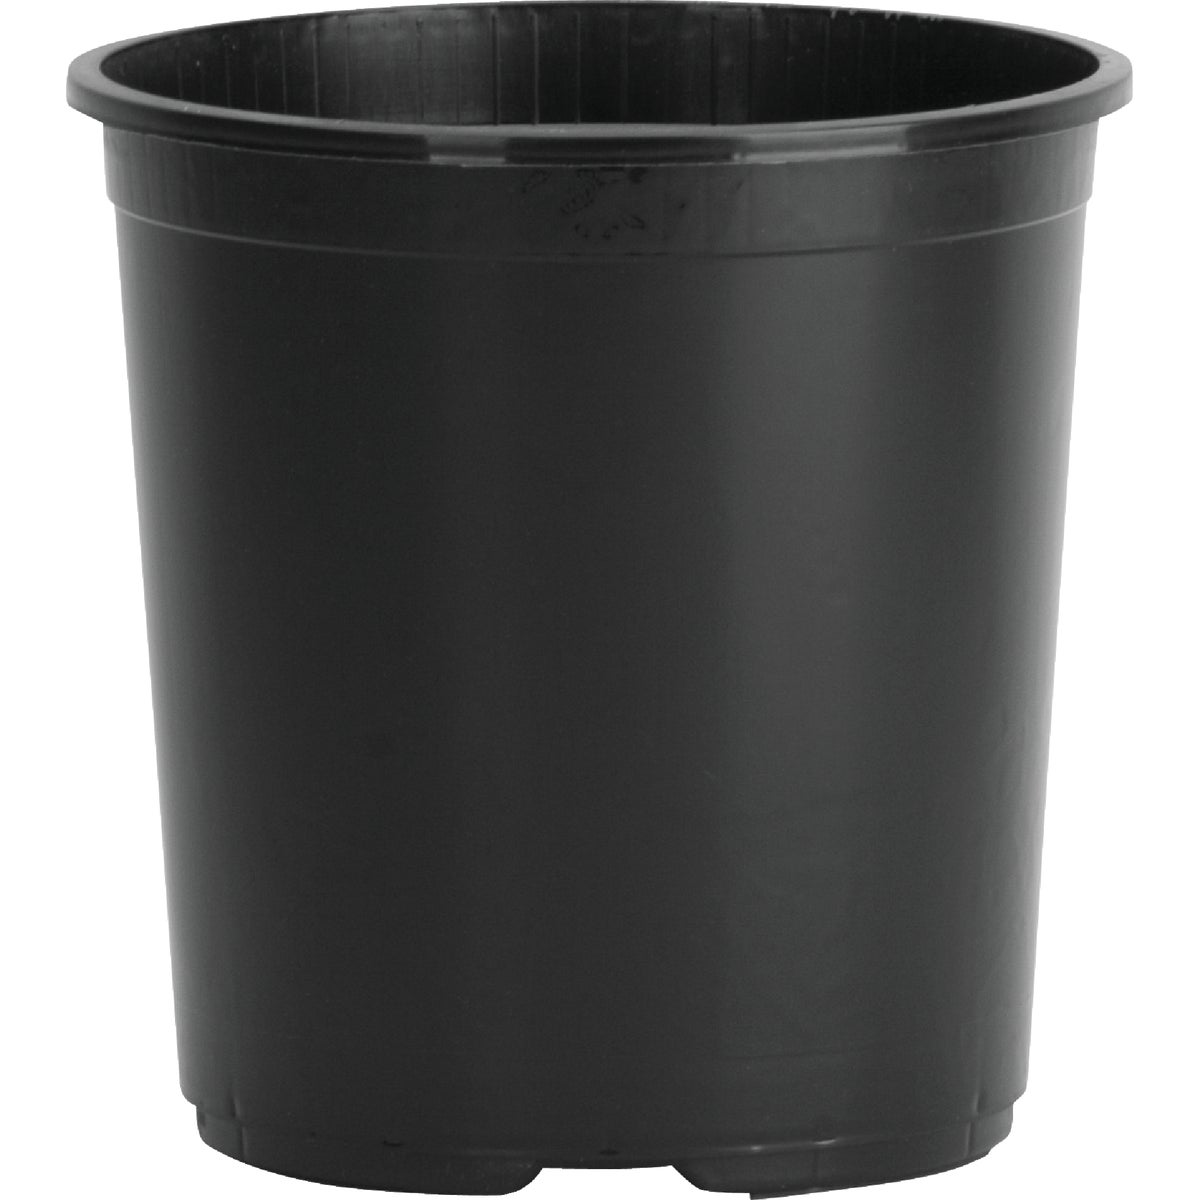 5 GAL BLACK SQUAT POT - NSS005 by Myers Industries Inc